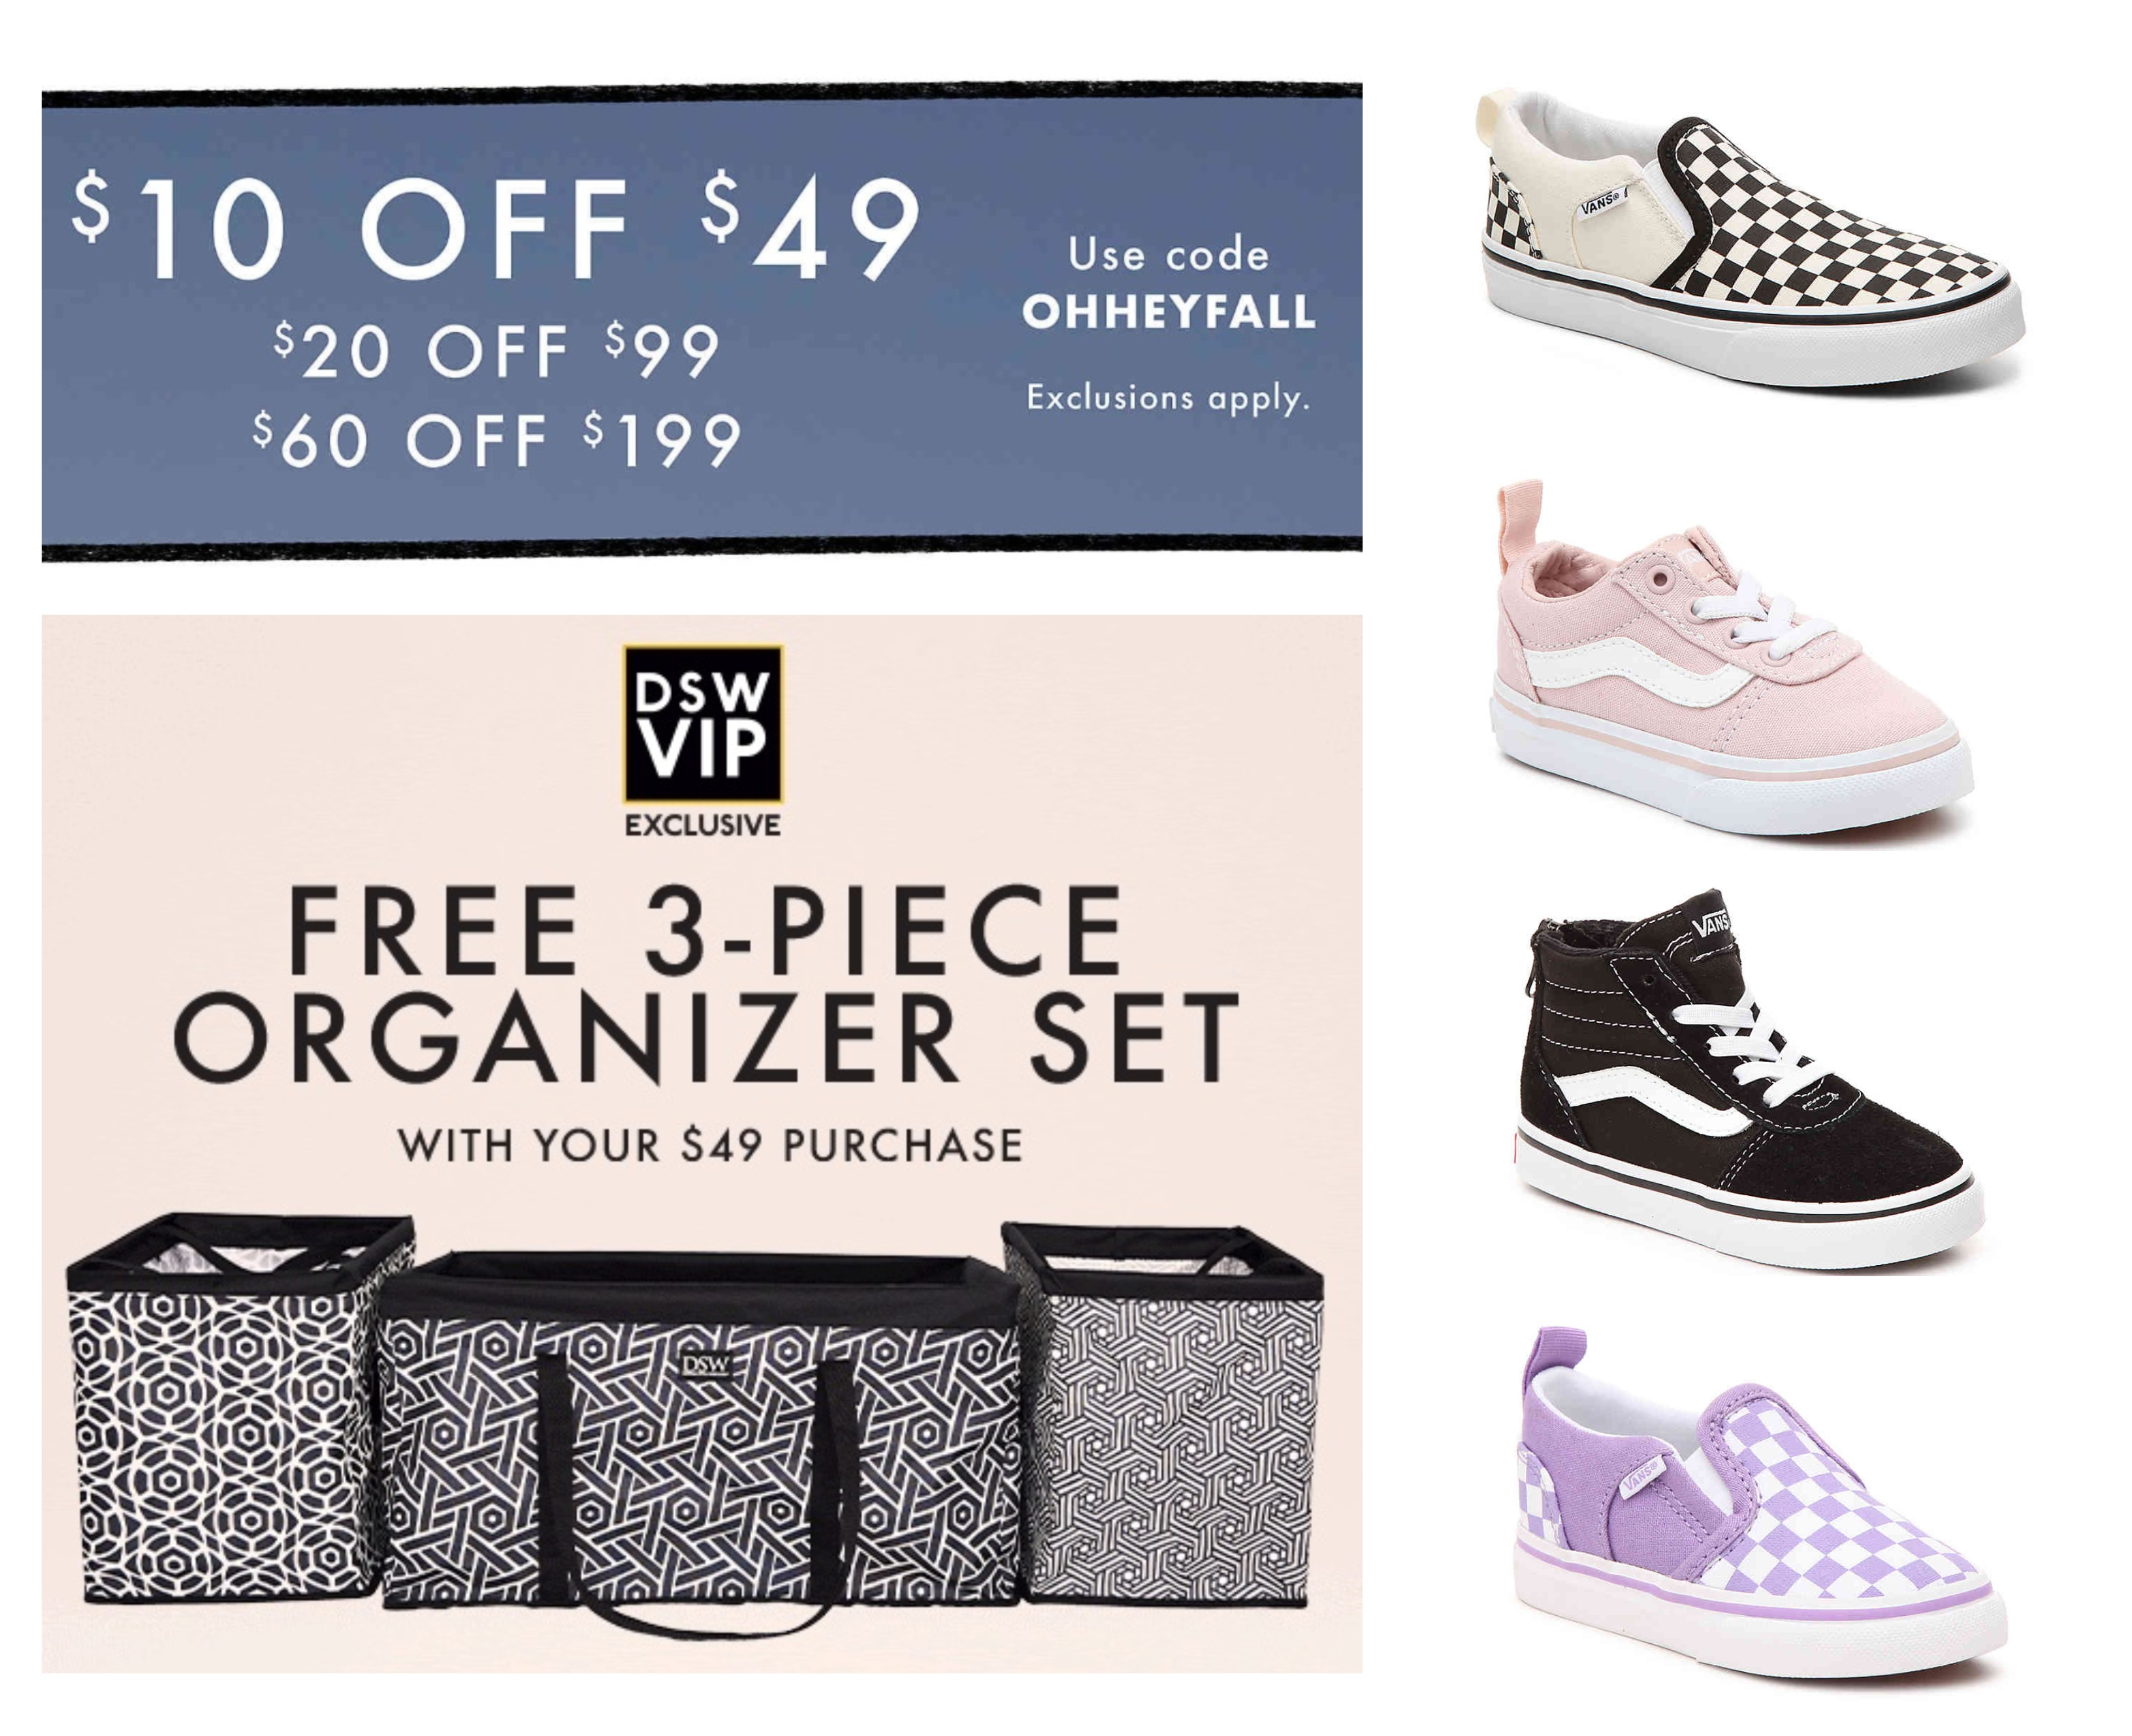 DSW: Save $10 off $49, $20 off $99, or $60 off $199 + Free